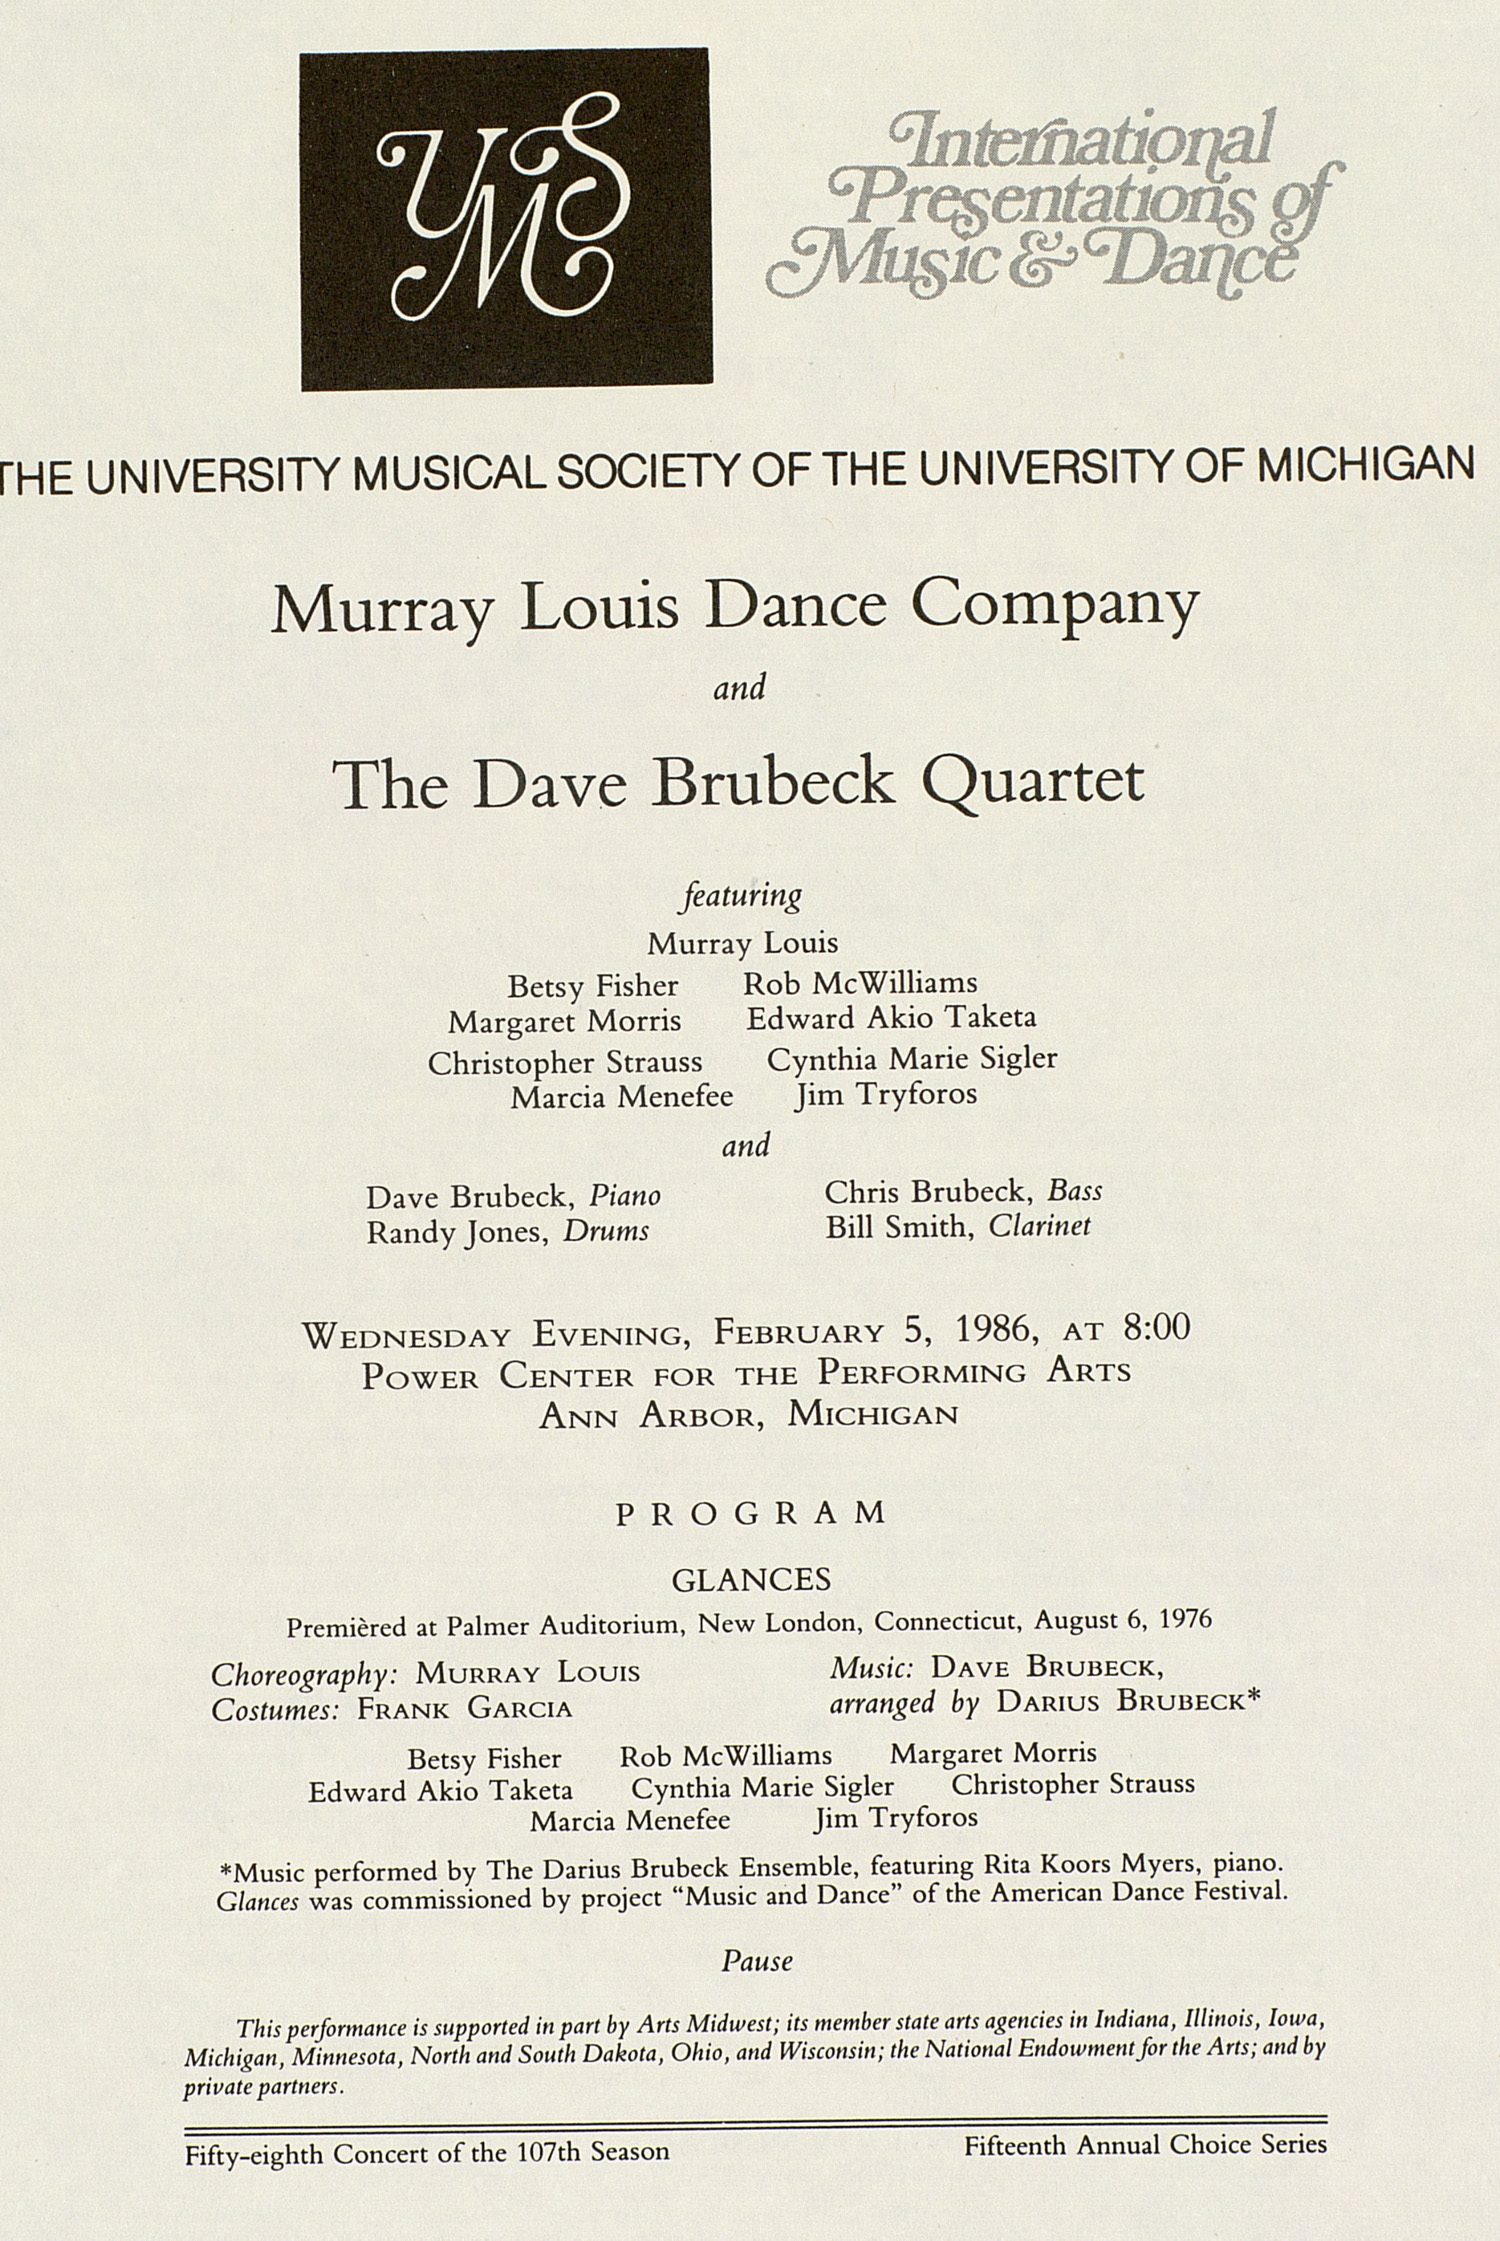 UMS Concert Program, February 5, 1986: International Presentations Of Music & Dance -- Murray Louis Dance Company image